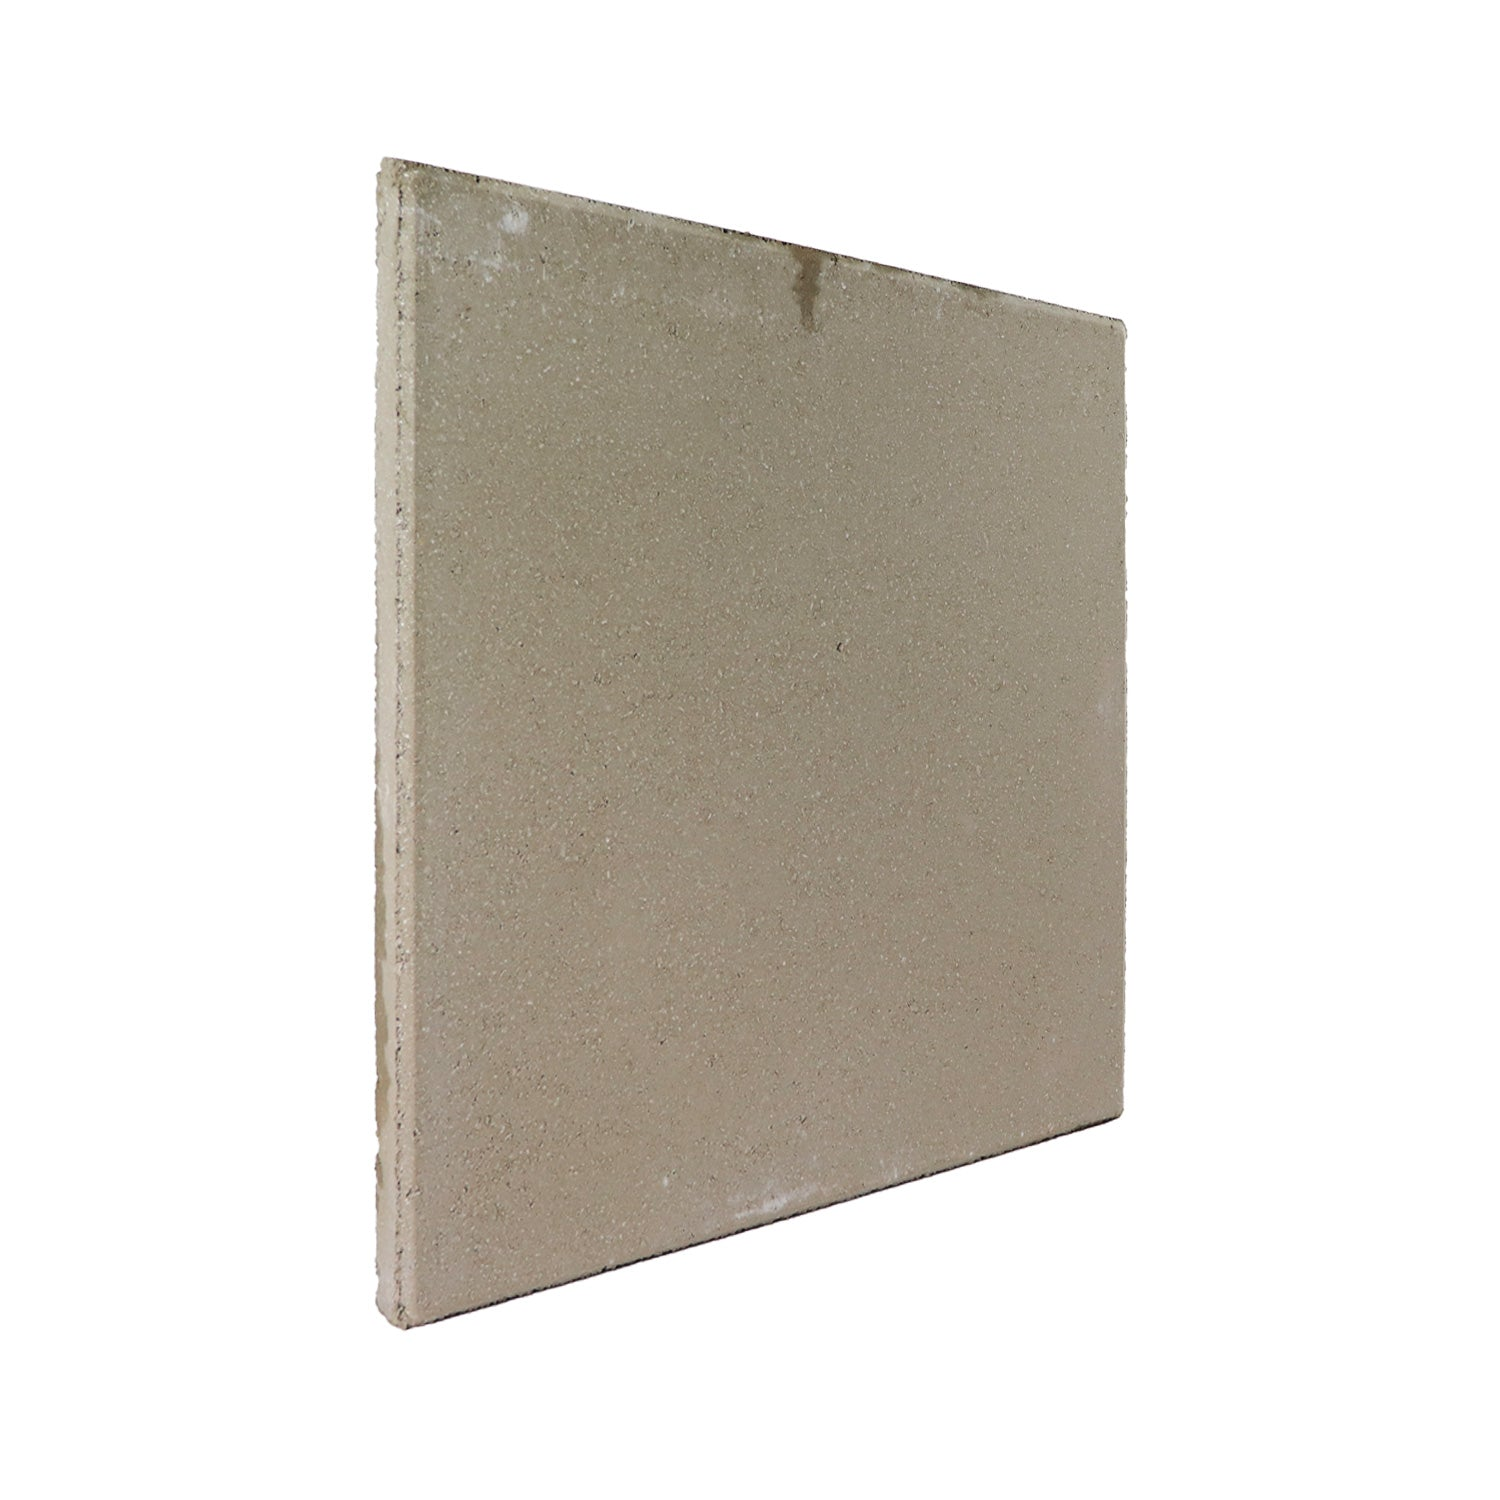 Village Stone Natural Smooth 450mm x 450mm